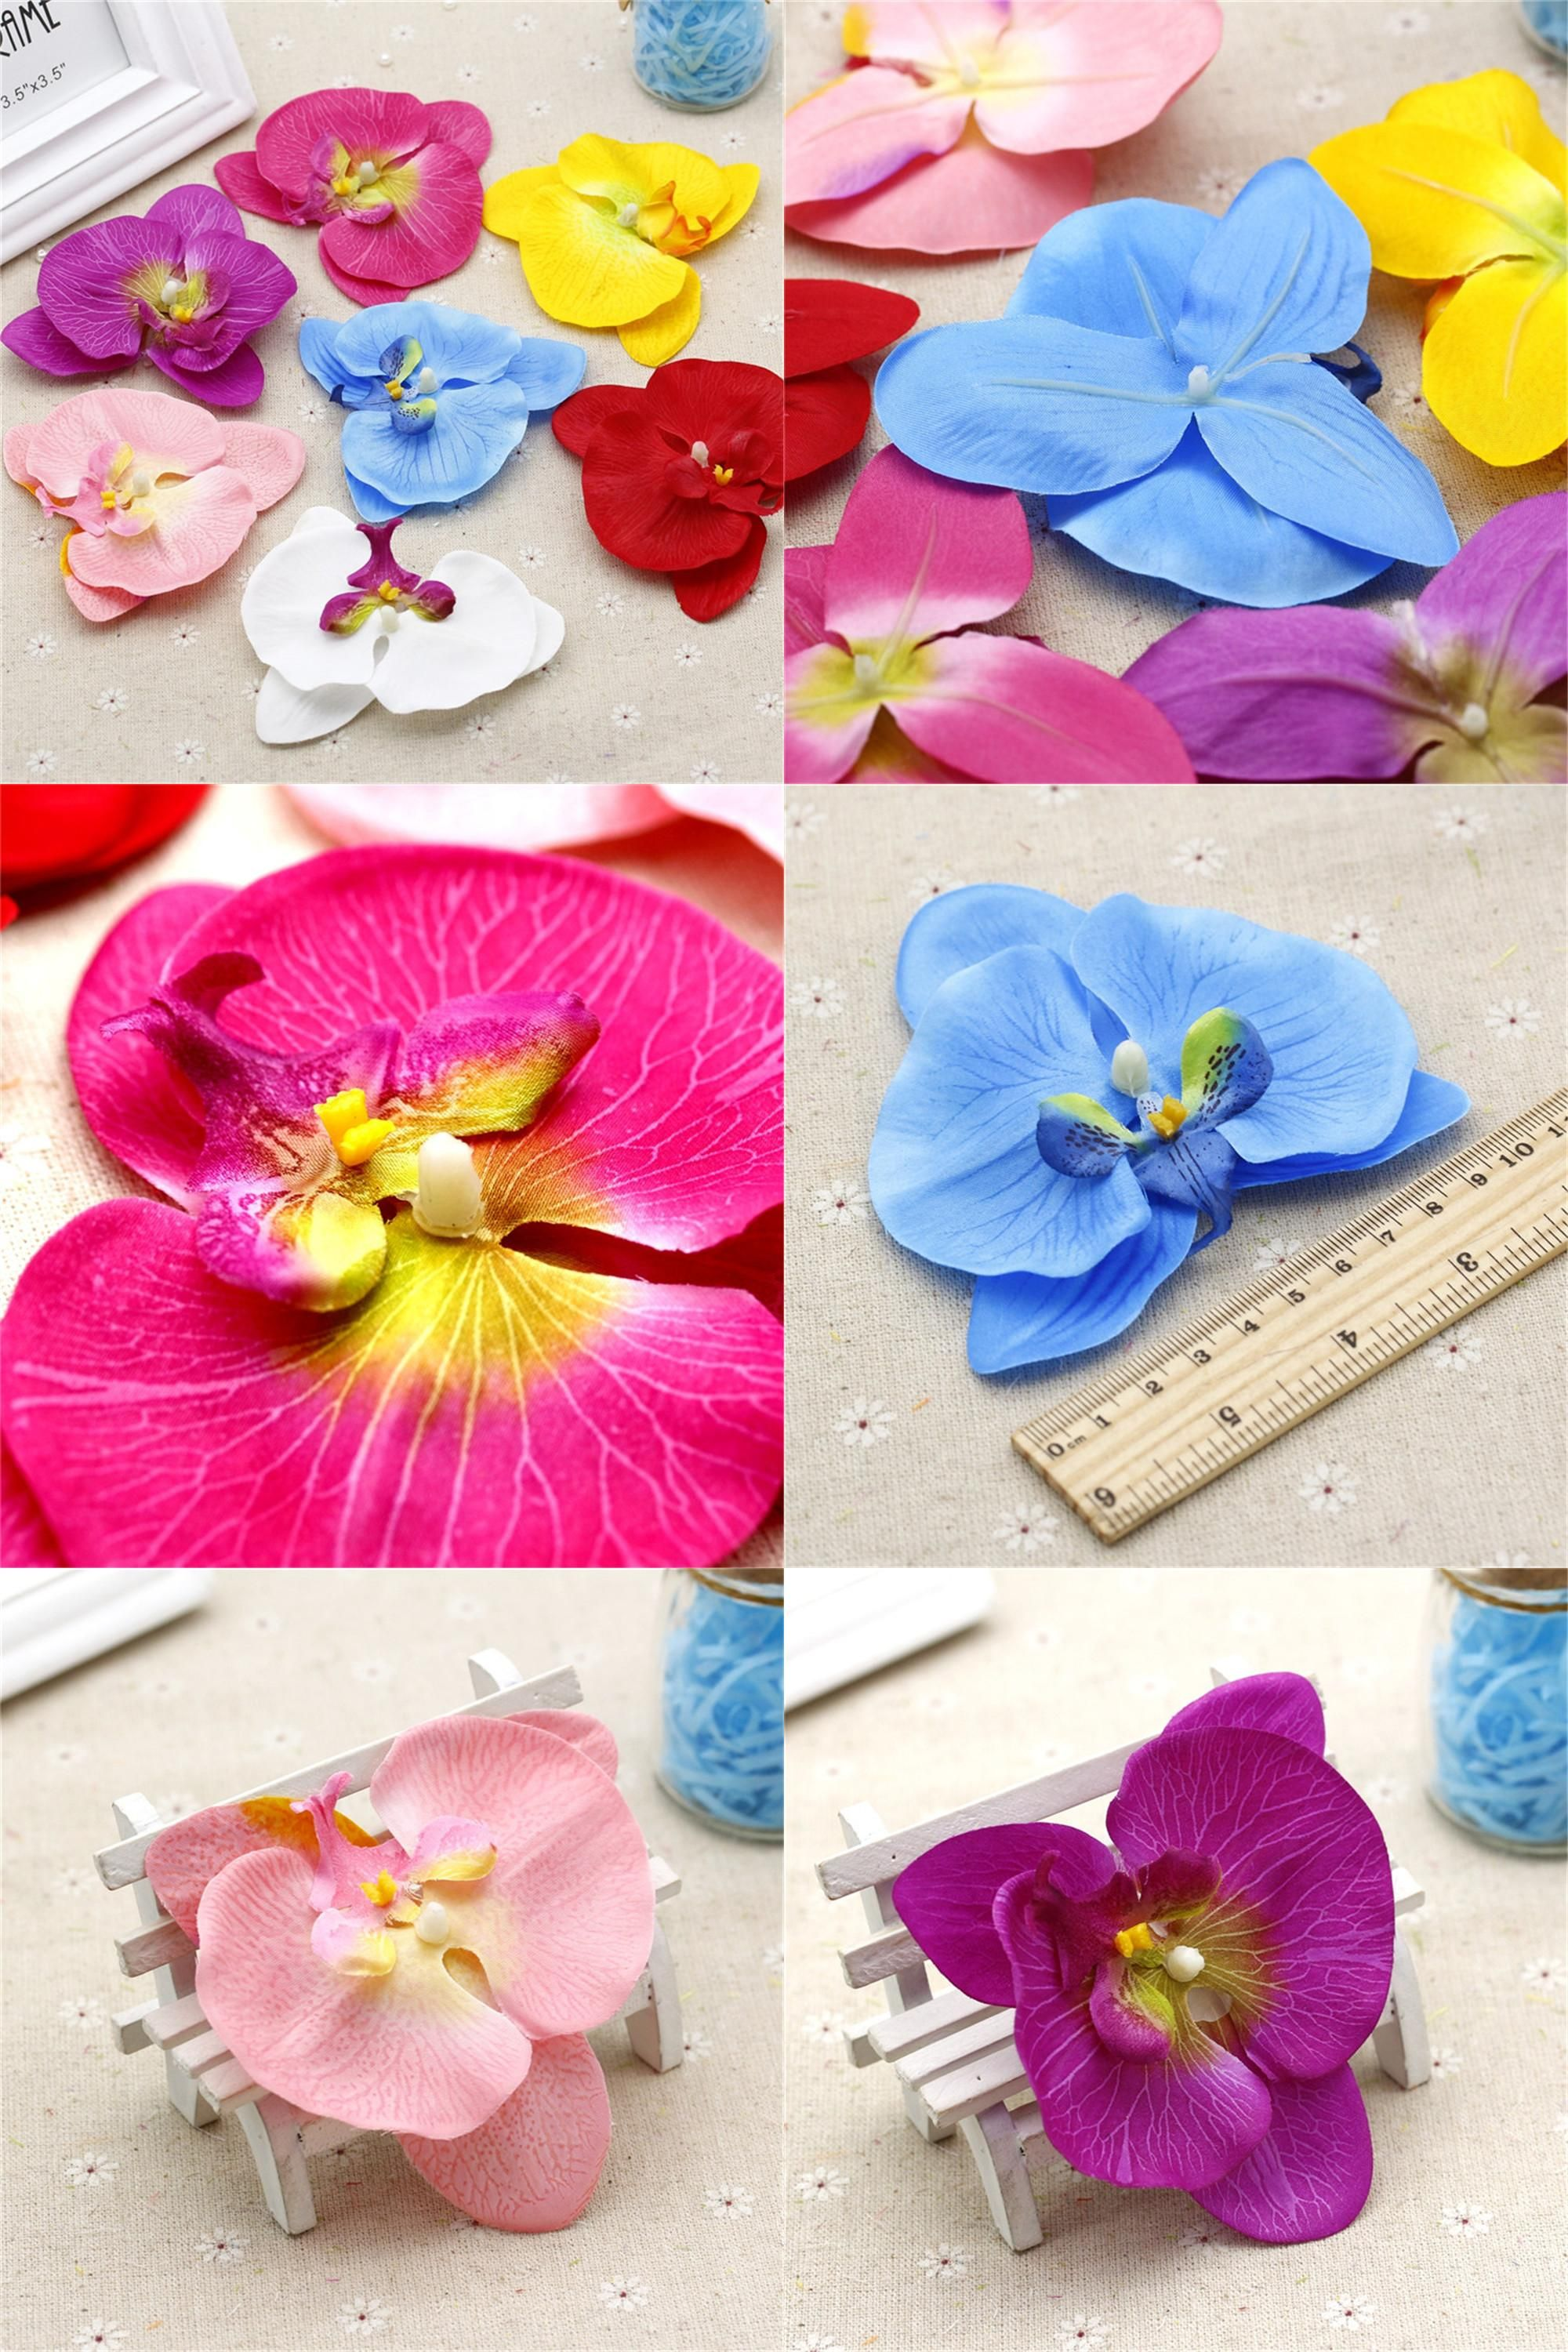 Visit To Buy 2pcslot 10cm Big Silk Artificial Orchid Flower For